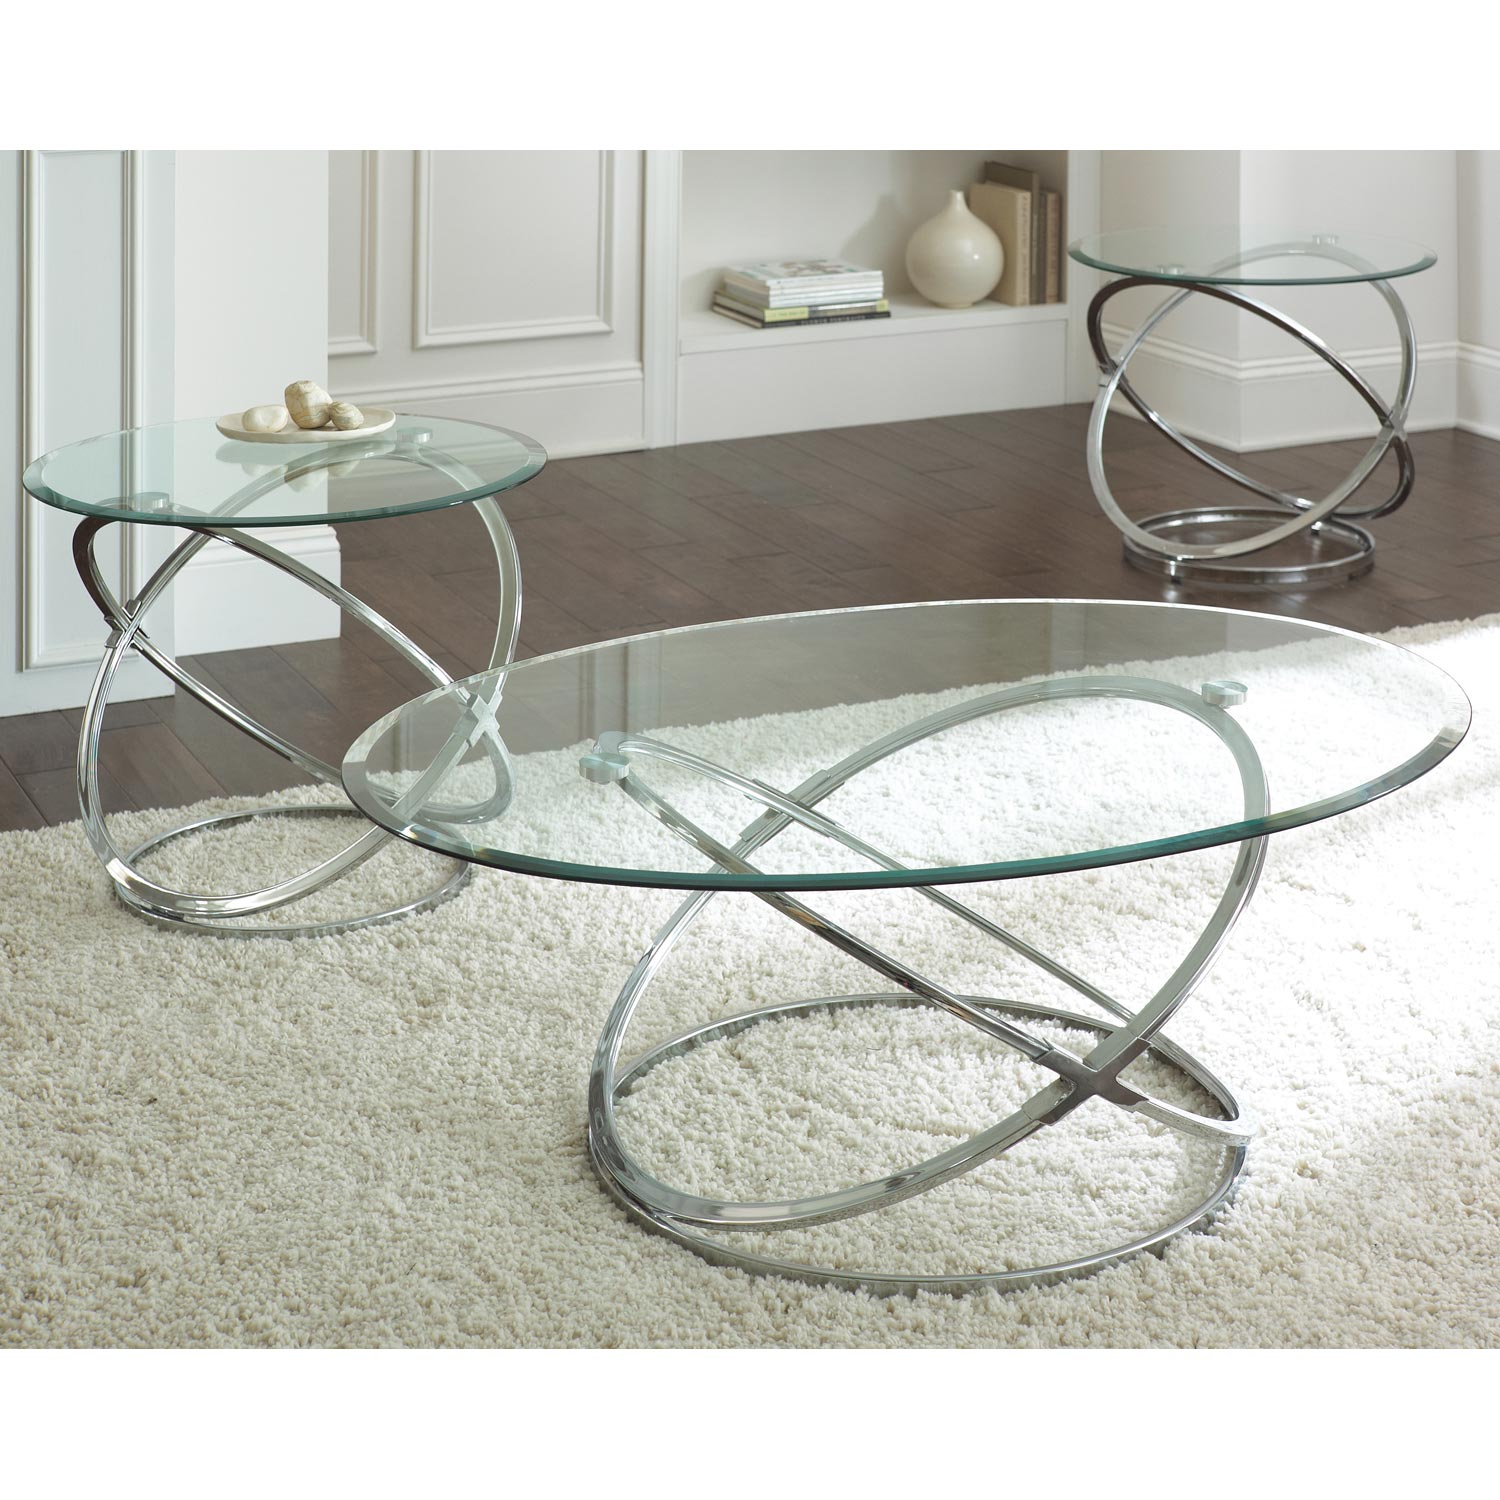 Orion 3 Piece Coffee Table Set Glass Chrome Rings Base DCG Stores